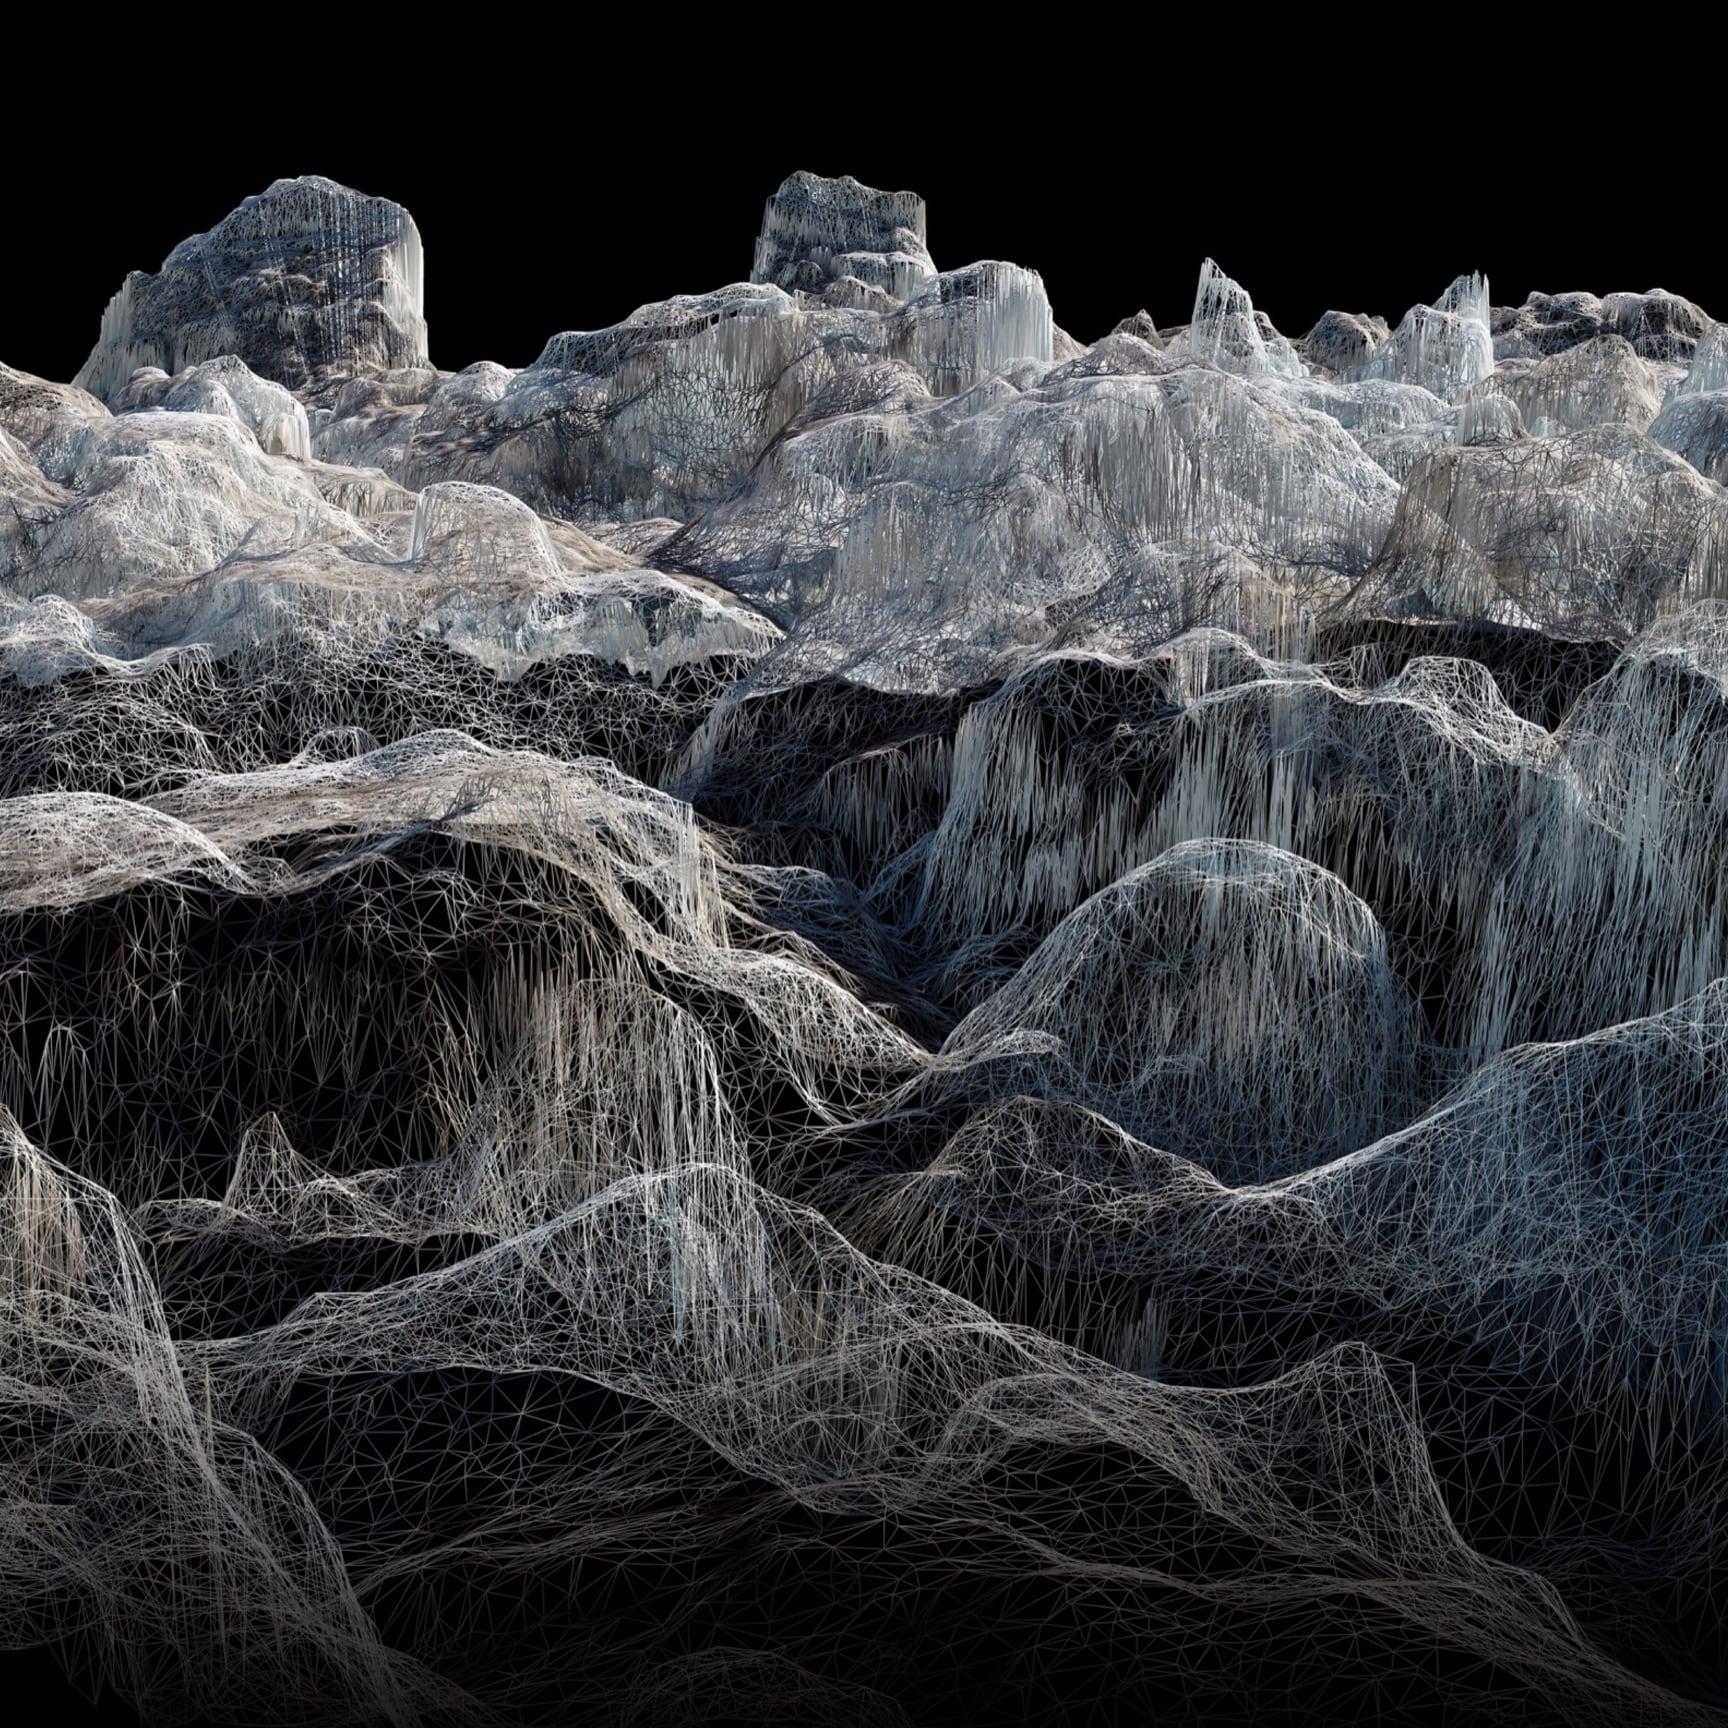 Dan Holdsworth's 'Acceleration Structures' explores and examines the topography of three great Alpine glaciers using geomapping technology, like no artist has done before.